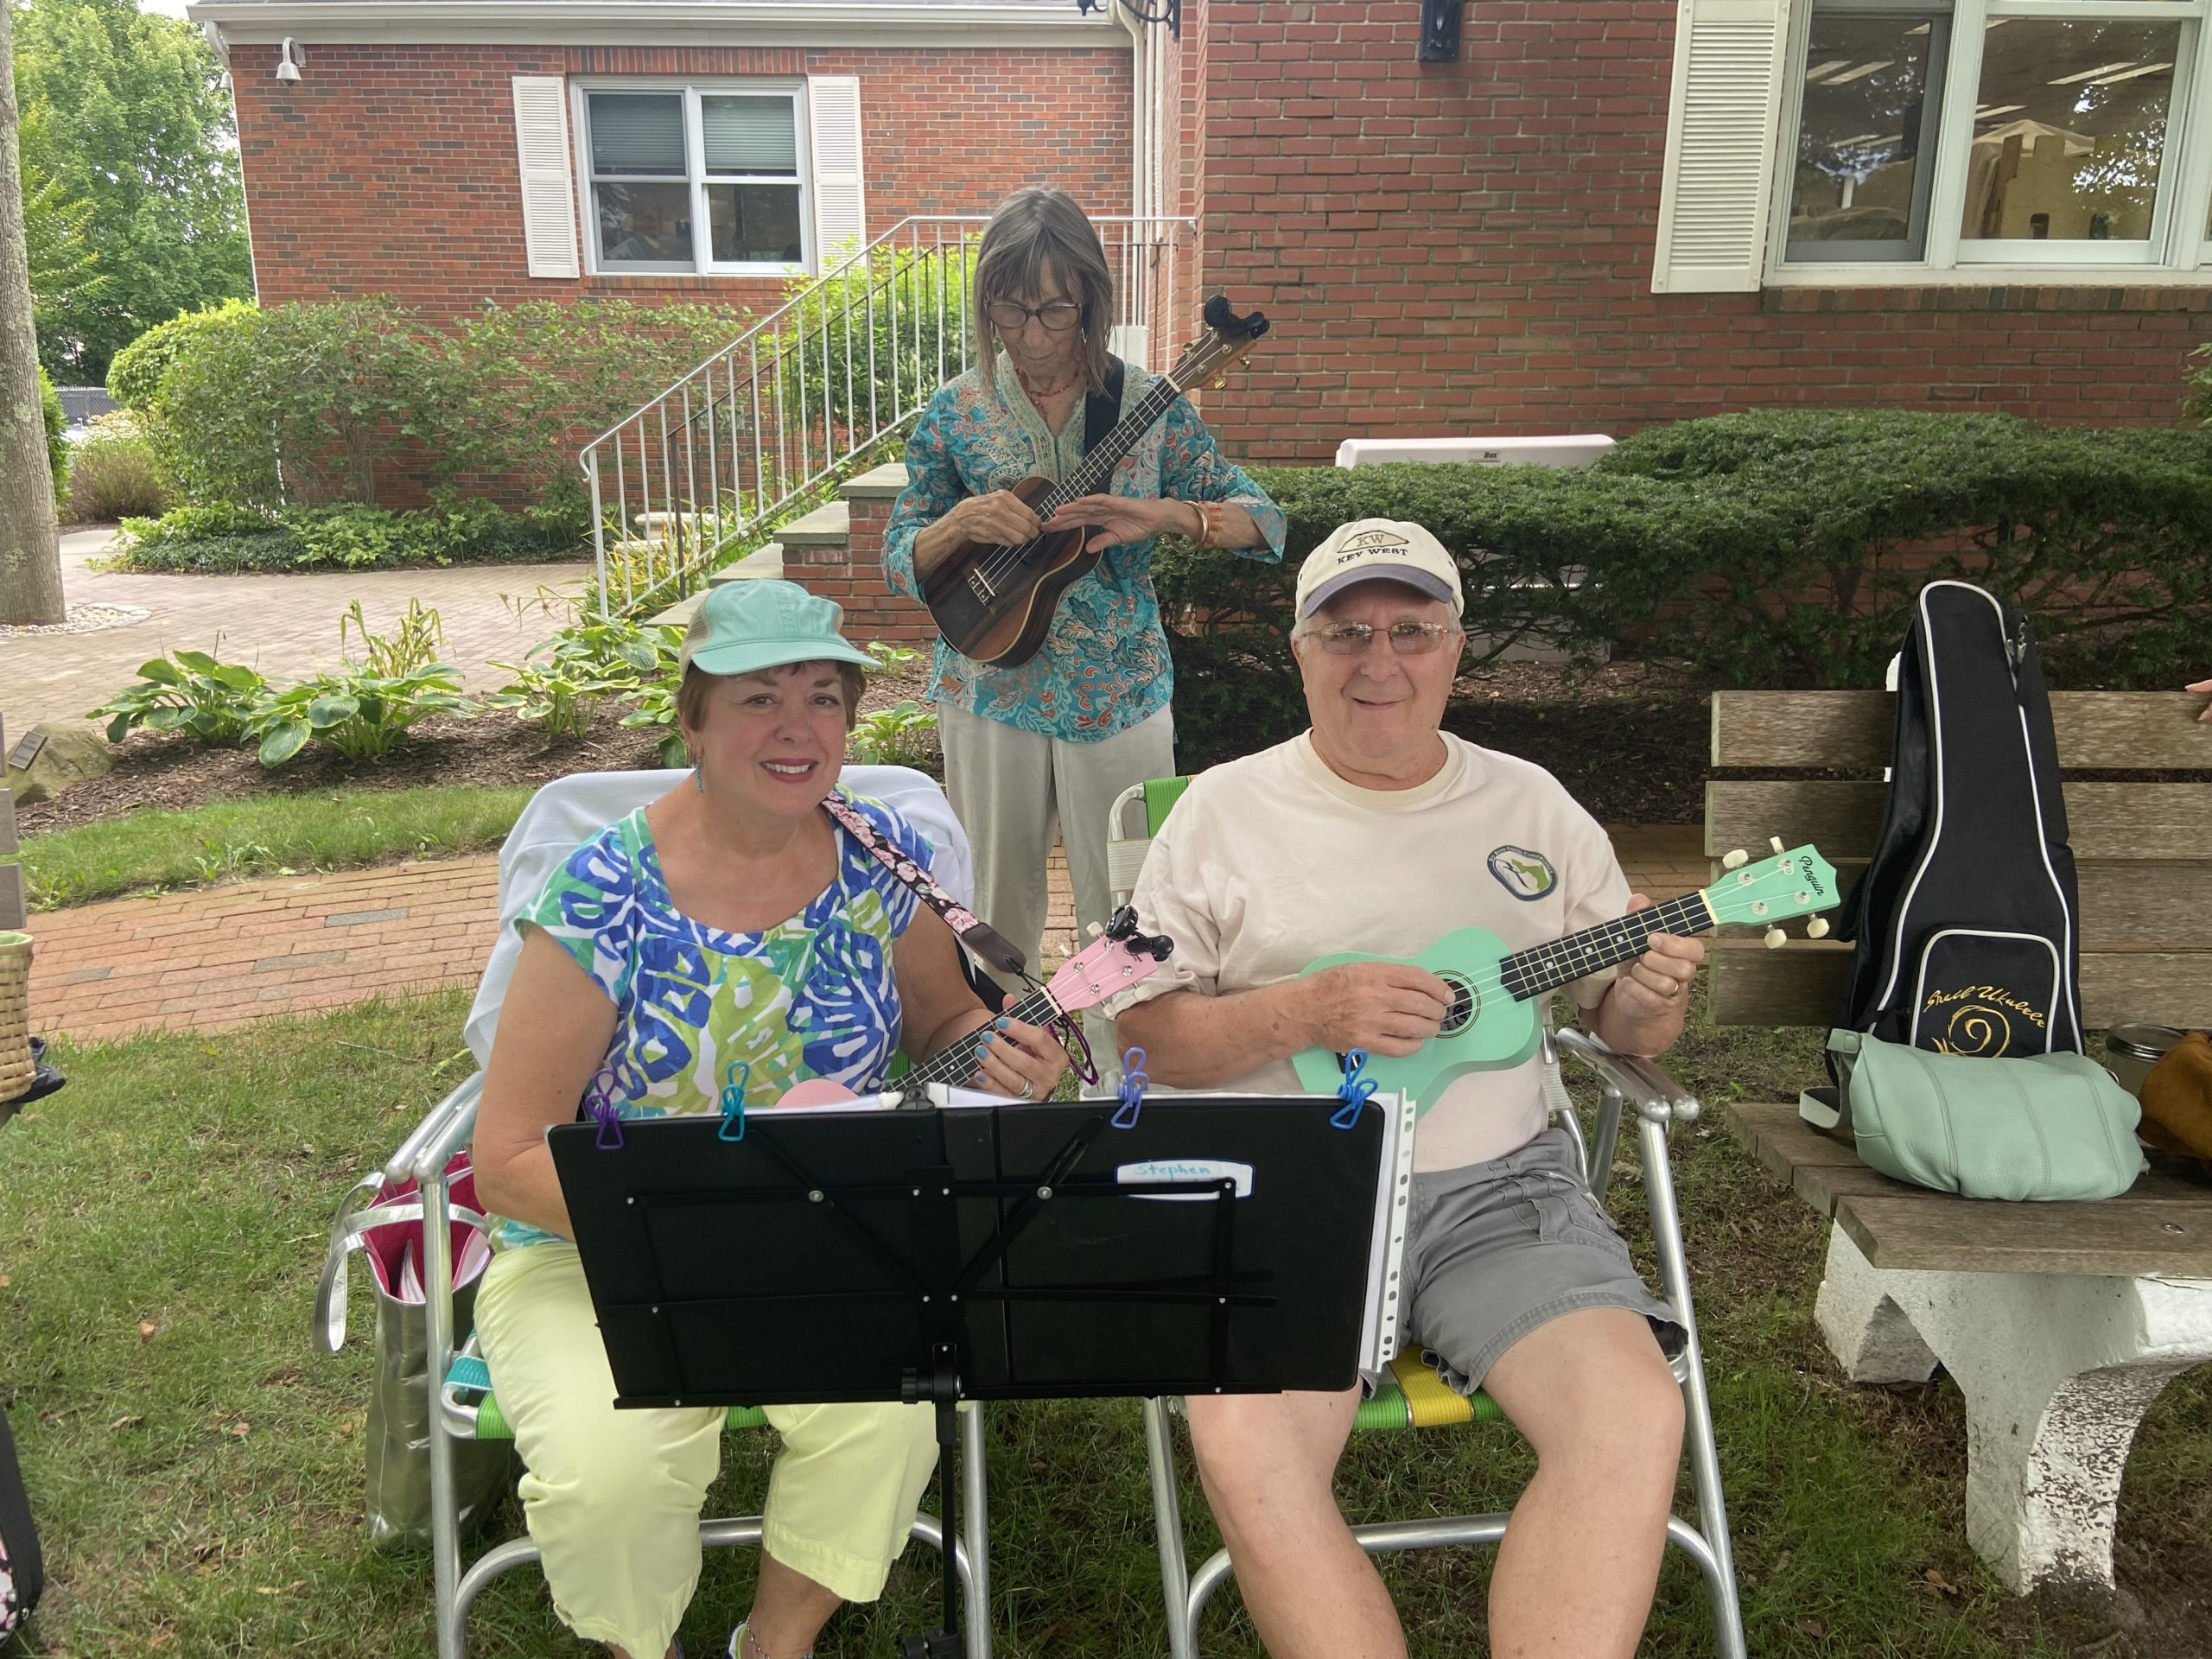 A husband and wife duo joins the Ukelele group to jam out on Monday.